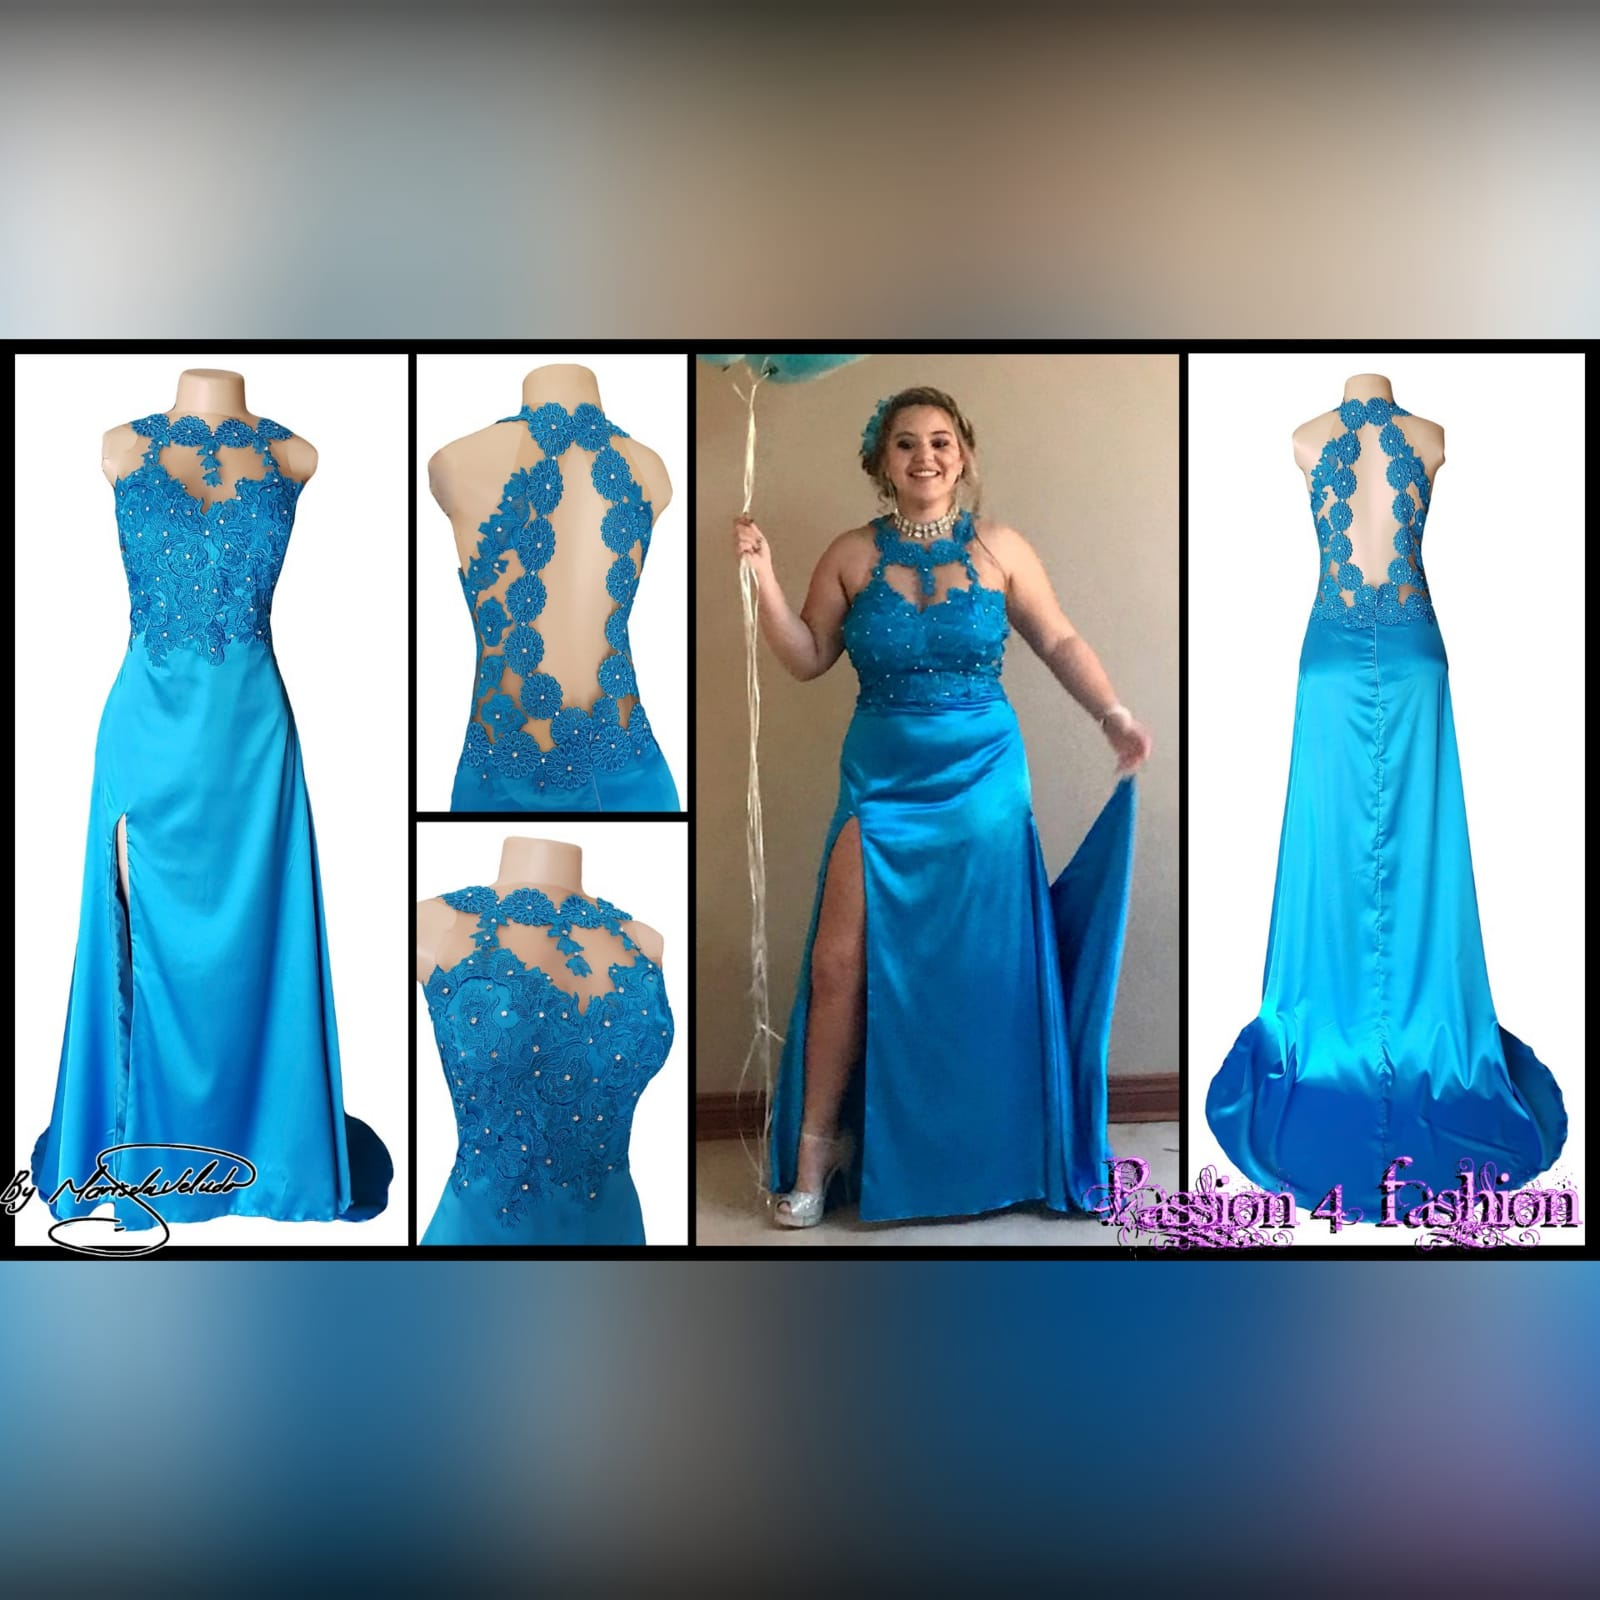 Blue long satin lace prom dress 8 blue long satin lace prom dress. Lace bodice with an illusion neckline and oval back opening with a slit and a train.